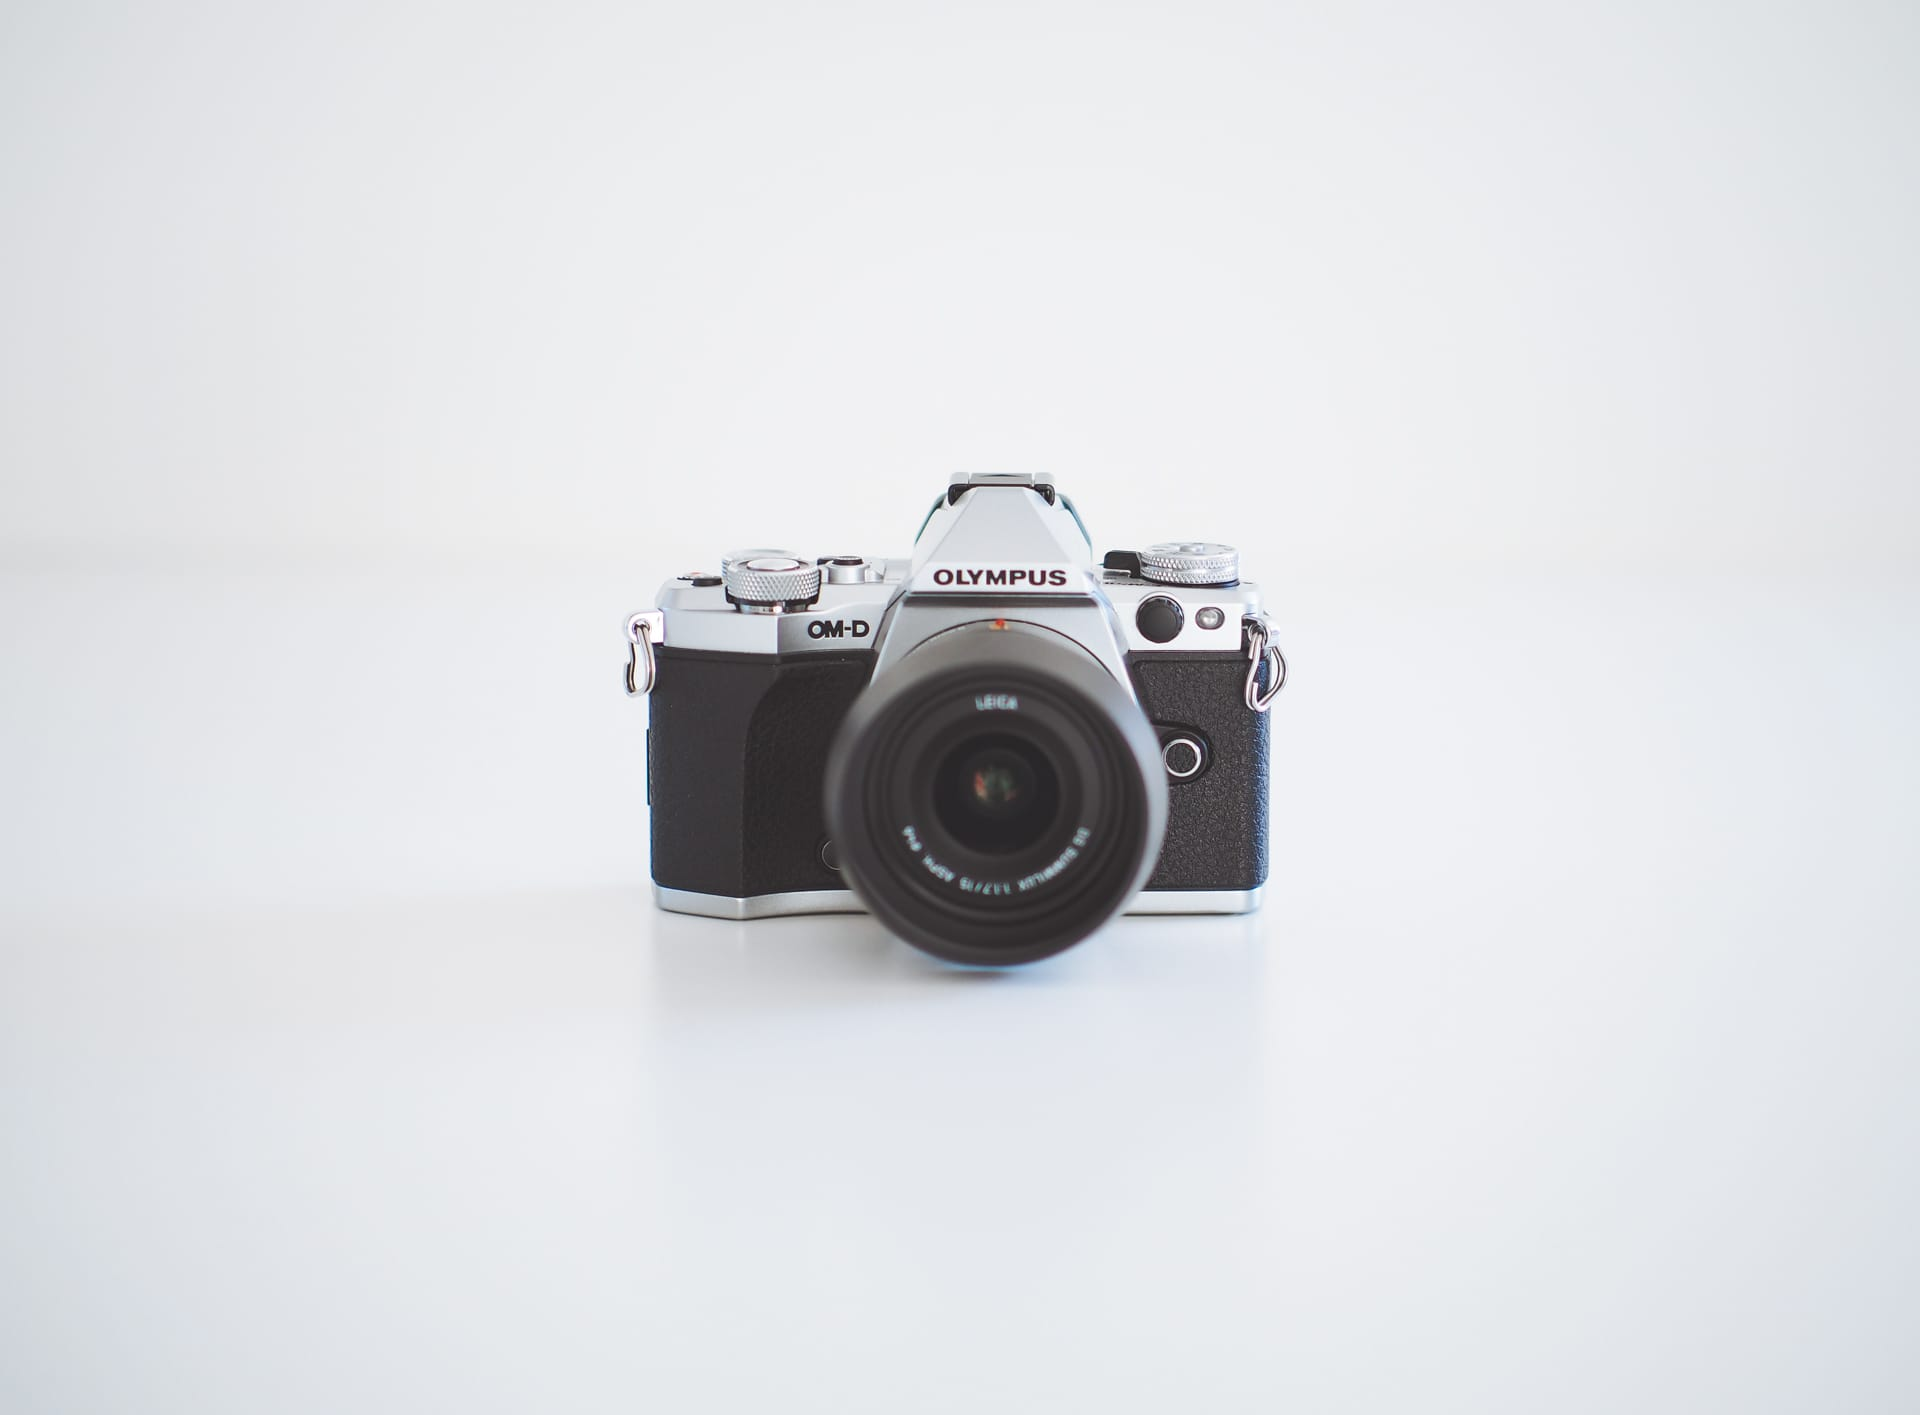 The Olympus OM-D E